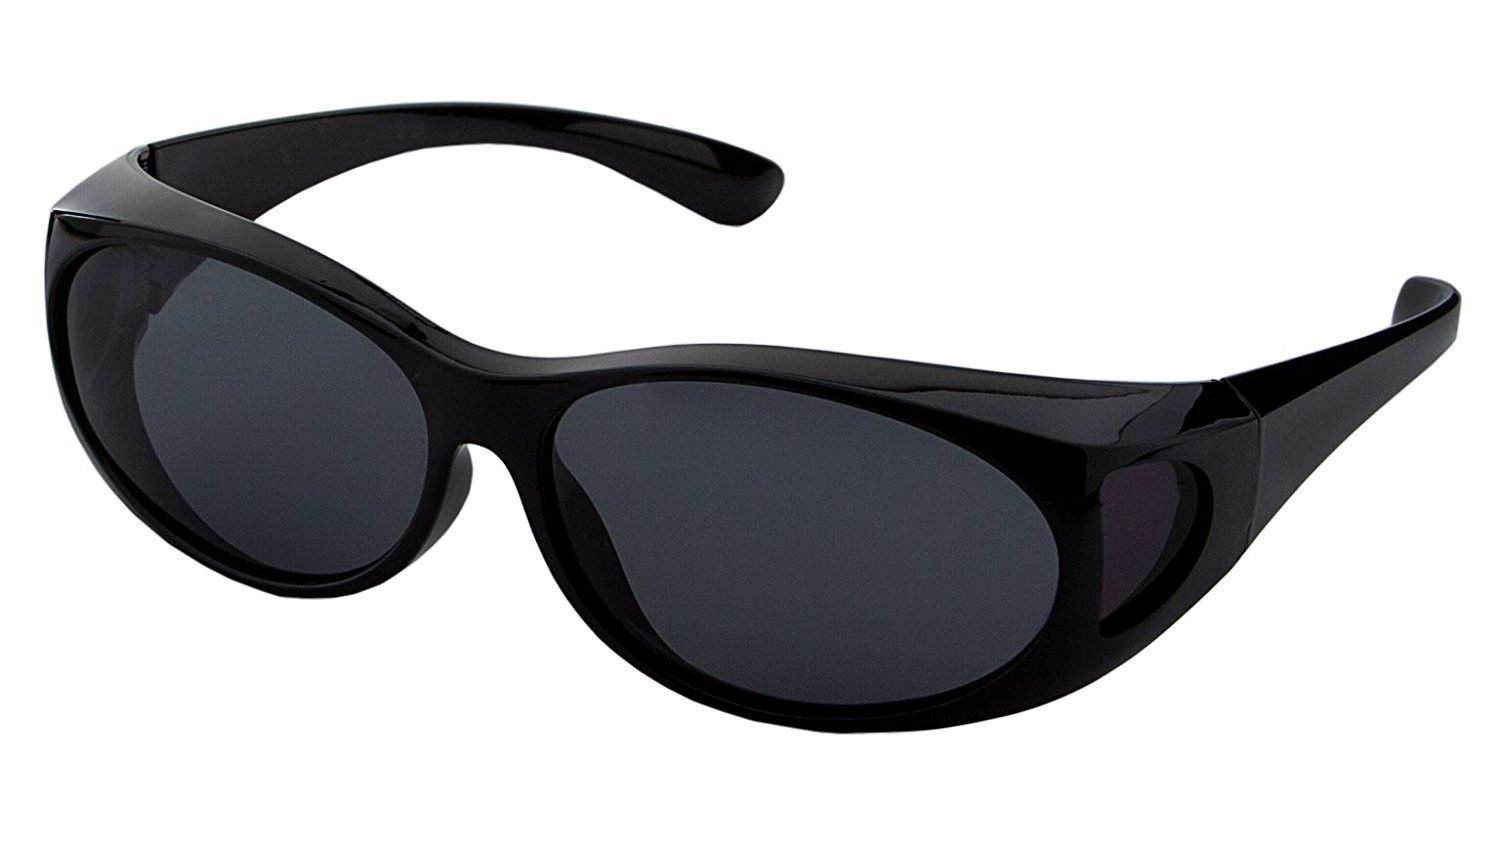 796752daf7 LensCovers Sunglasses Wear Over Prescription Glasses. Size Small with  Polarization.